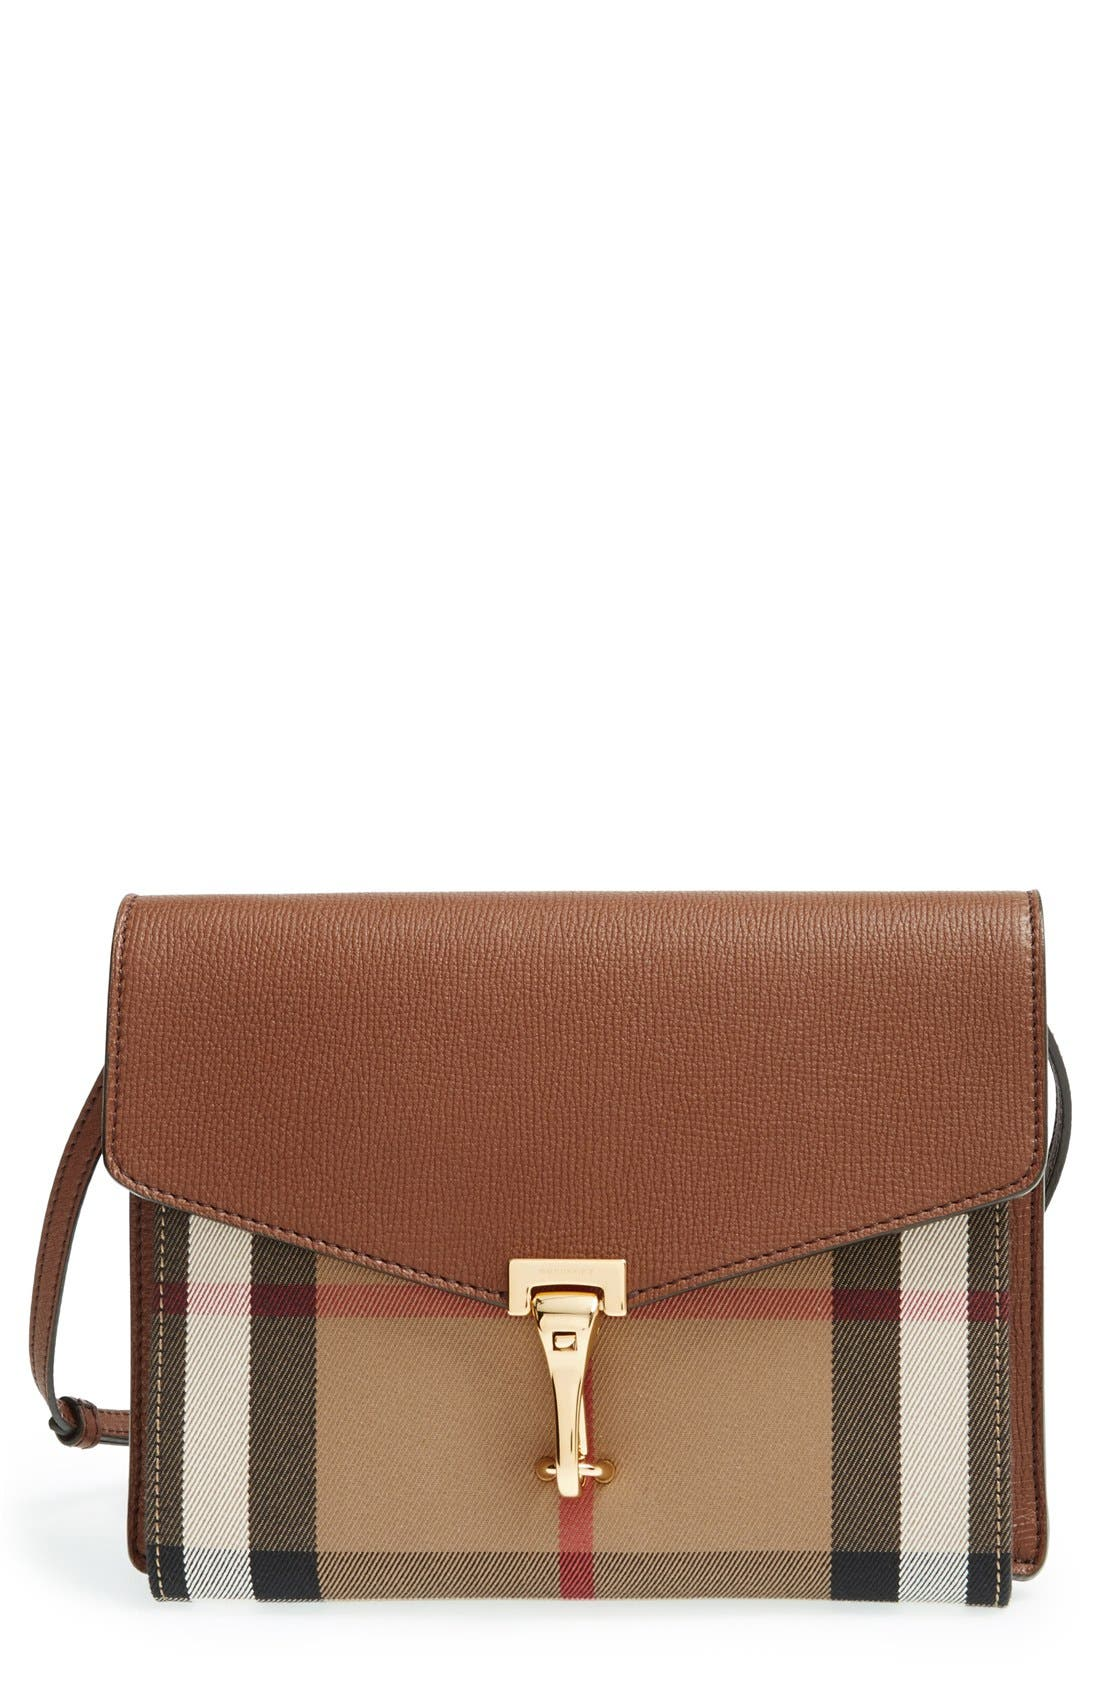 Burberry Women's Bags